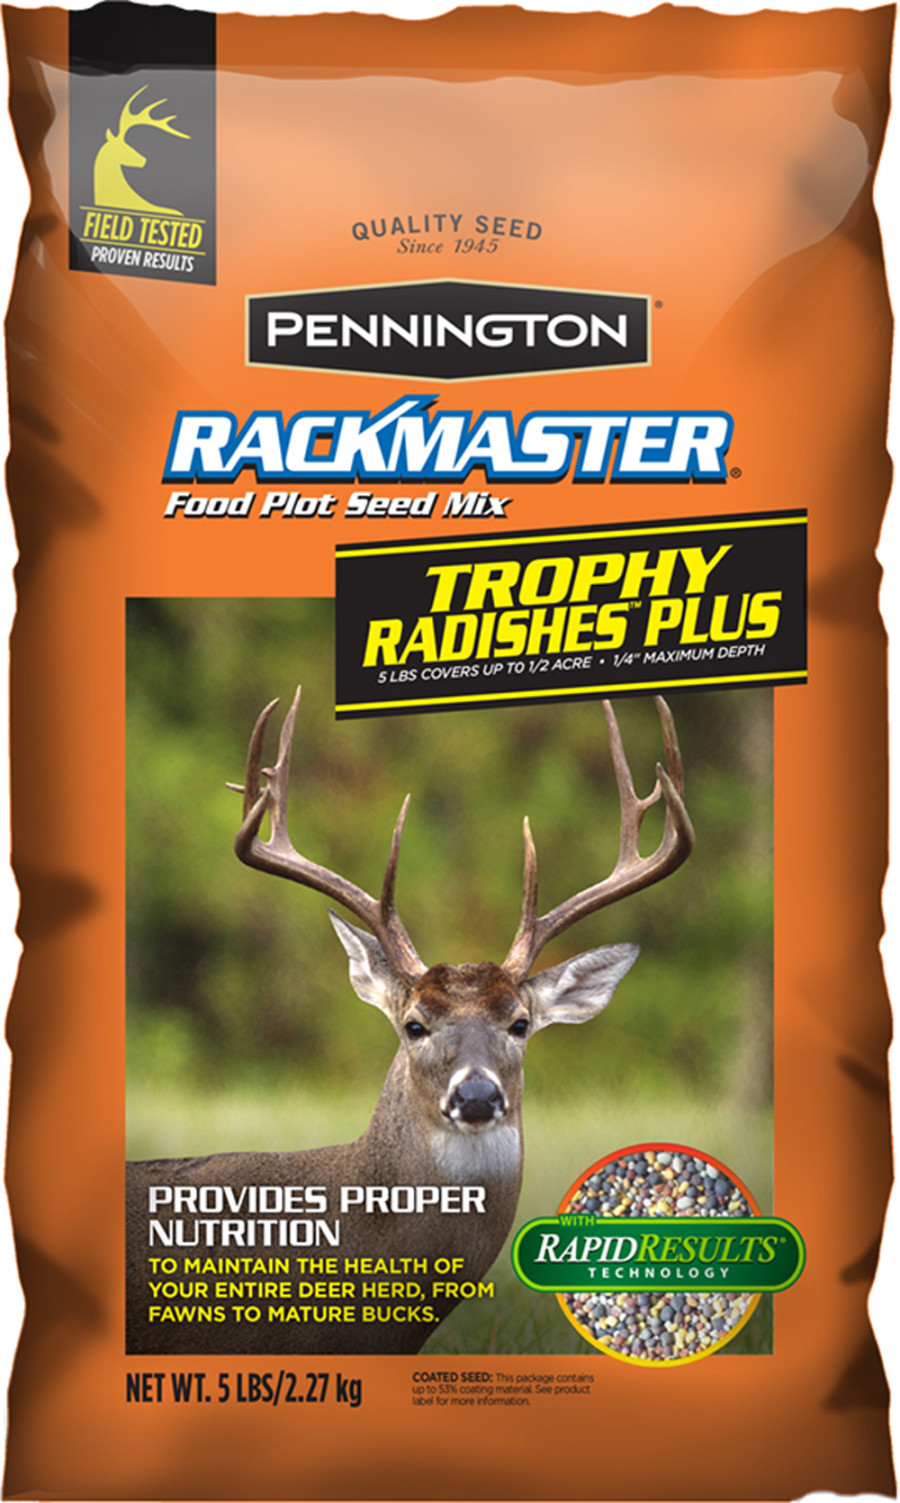 Pennington Rackmaster Trophy Radishes Plus Food Plot Seed Mix 6ea/5 lb